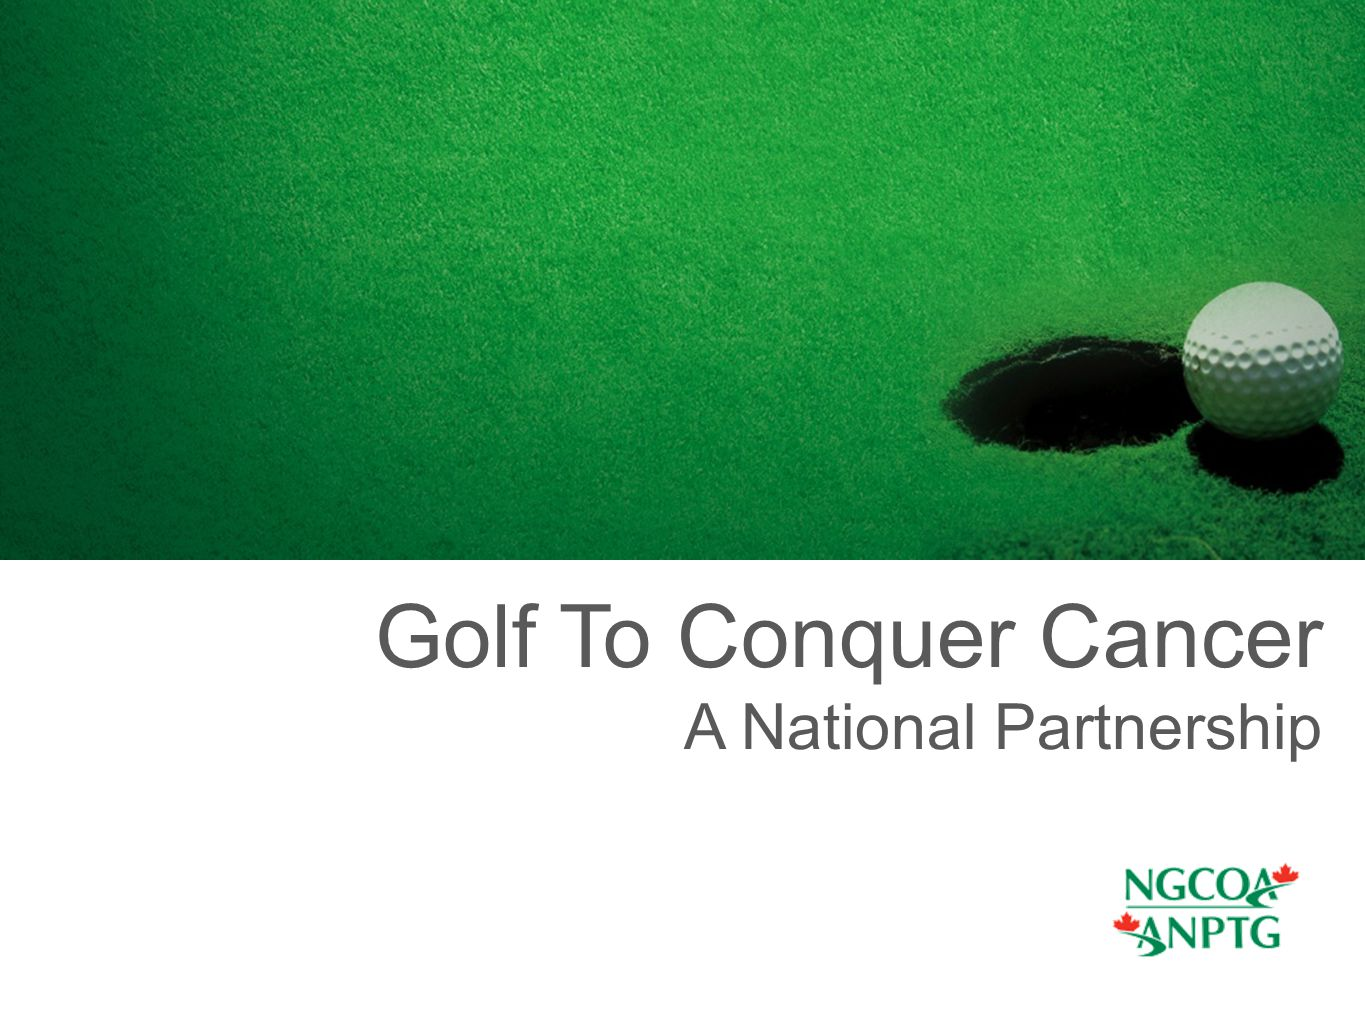 The Partnership National Golf Fundraising program that will raise funds for Personalized Cancer Medicine in a big and bold way through a partnership with the Canadian Golf Industry